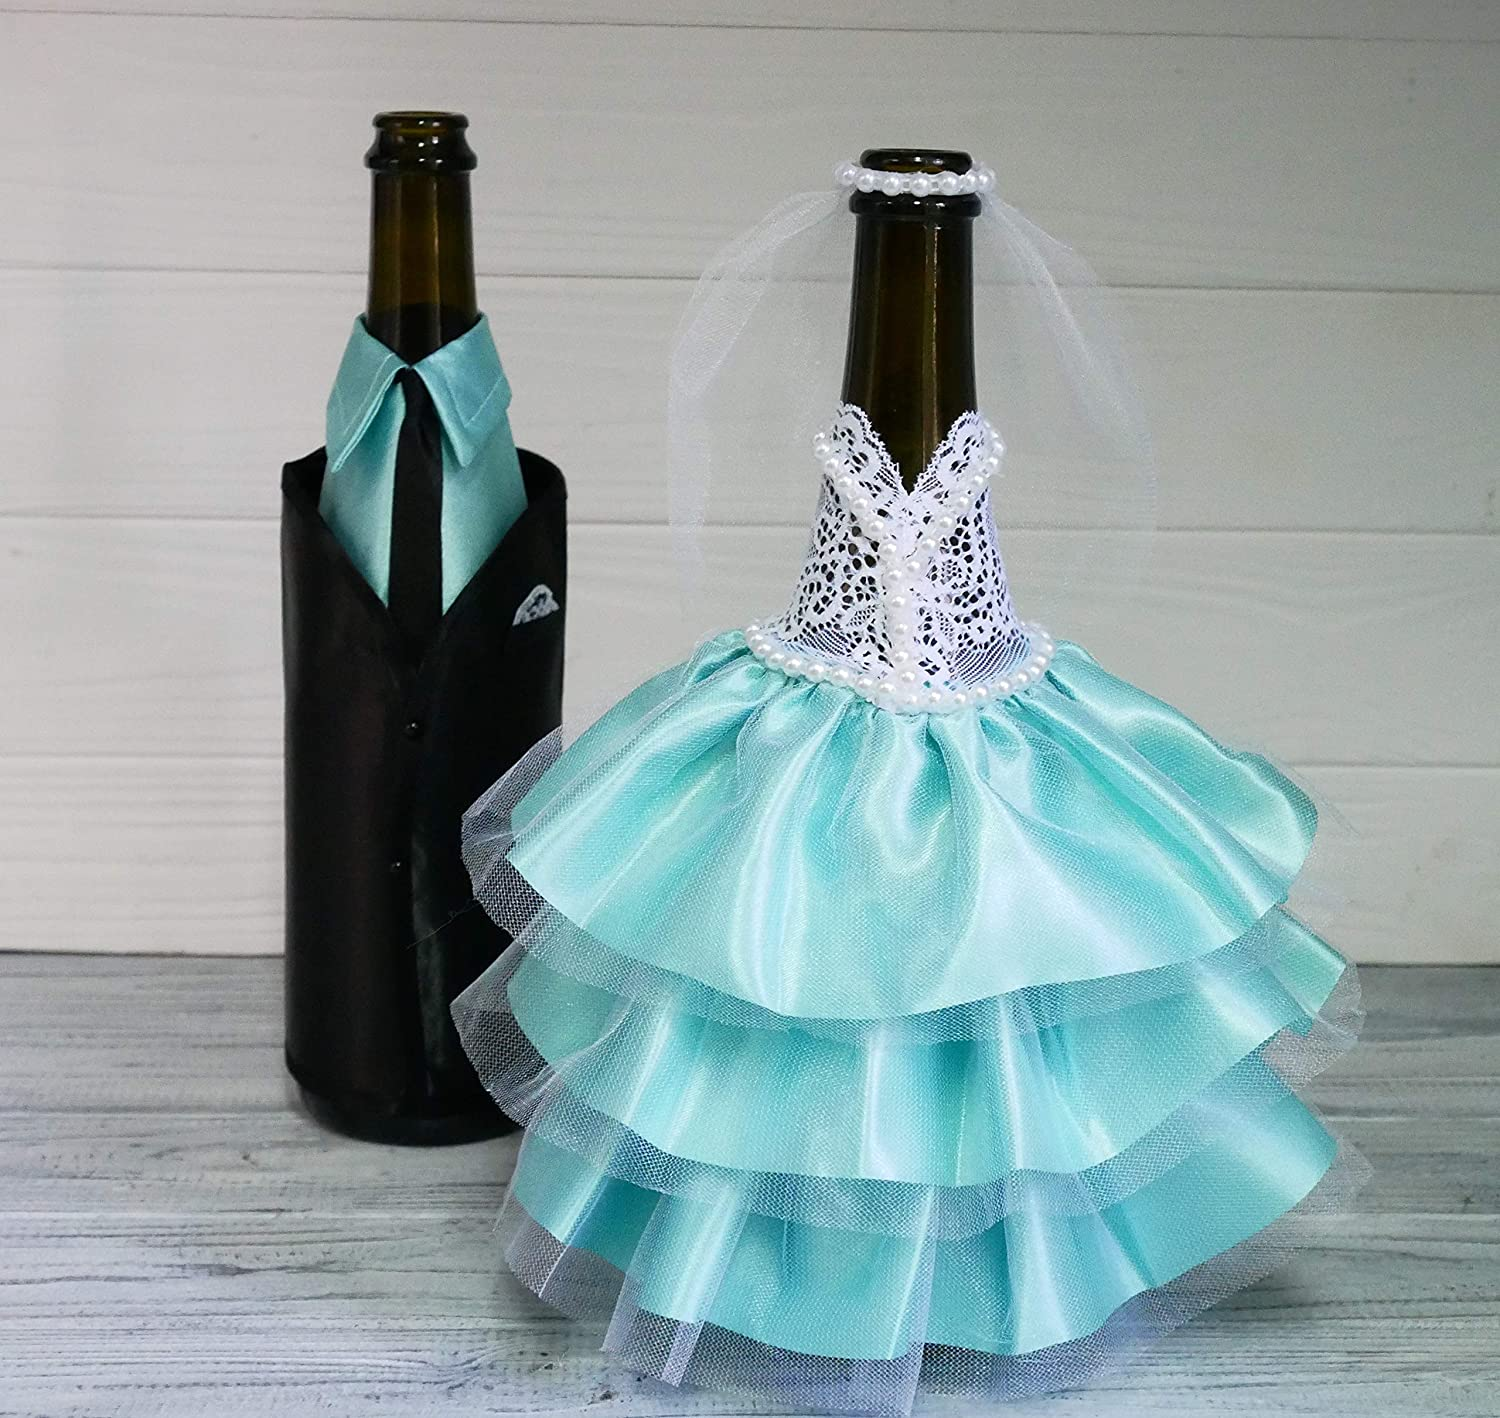 Buy Bride and Groom Wine Bottle Covers - Wine bottle dress-up for Weddings  - Wedding Gifts For the Couple - Fun Wine Bottle Covers - Wedding  Centerpieces Decorations - Wine décor - wine accessories (mint) Online at  Low Prices in India - Amazon.in